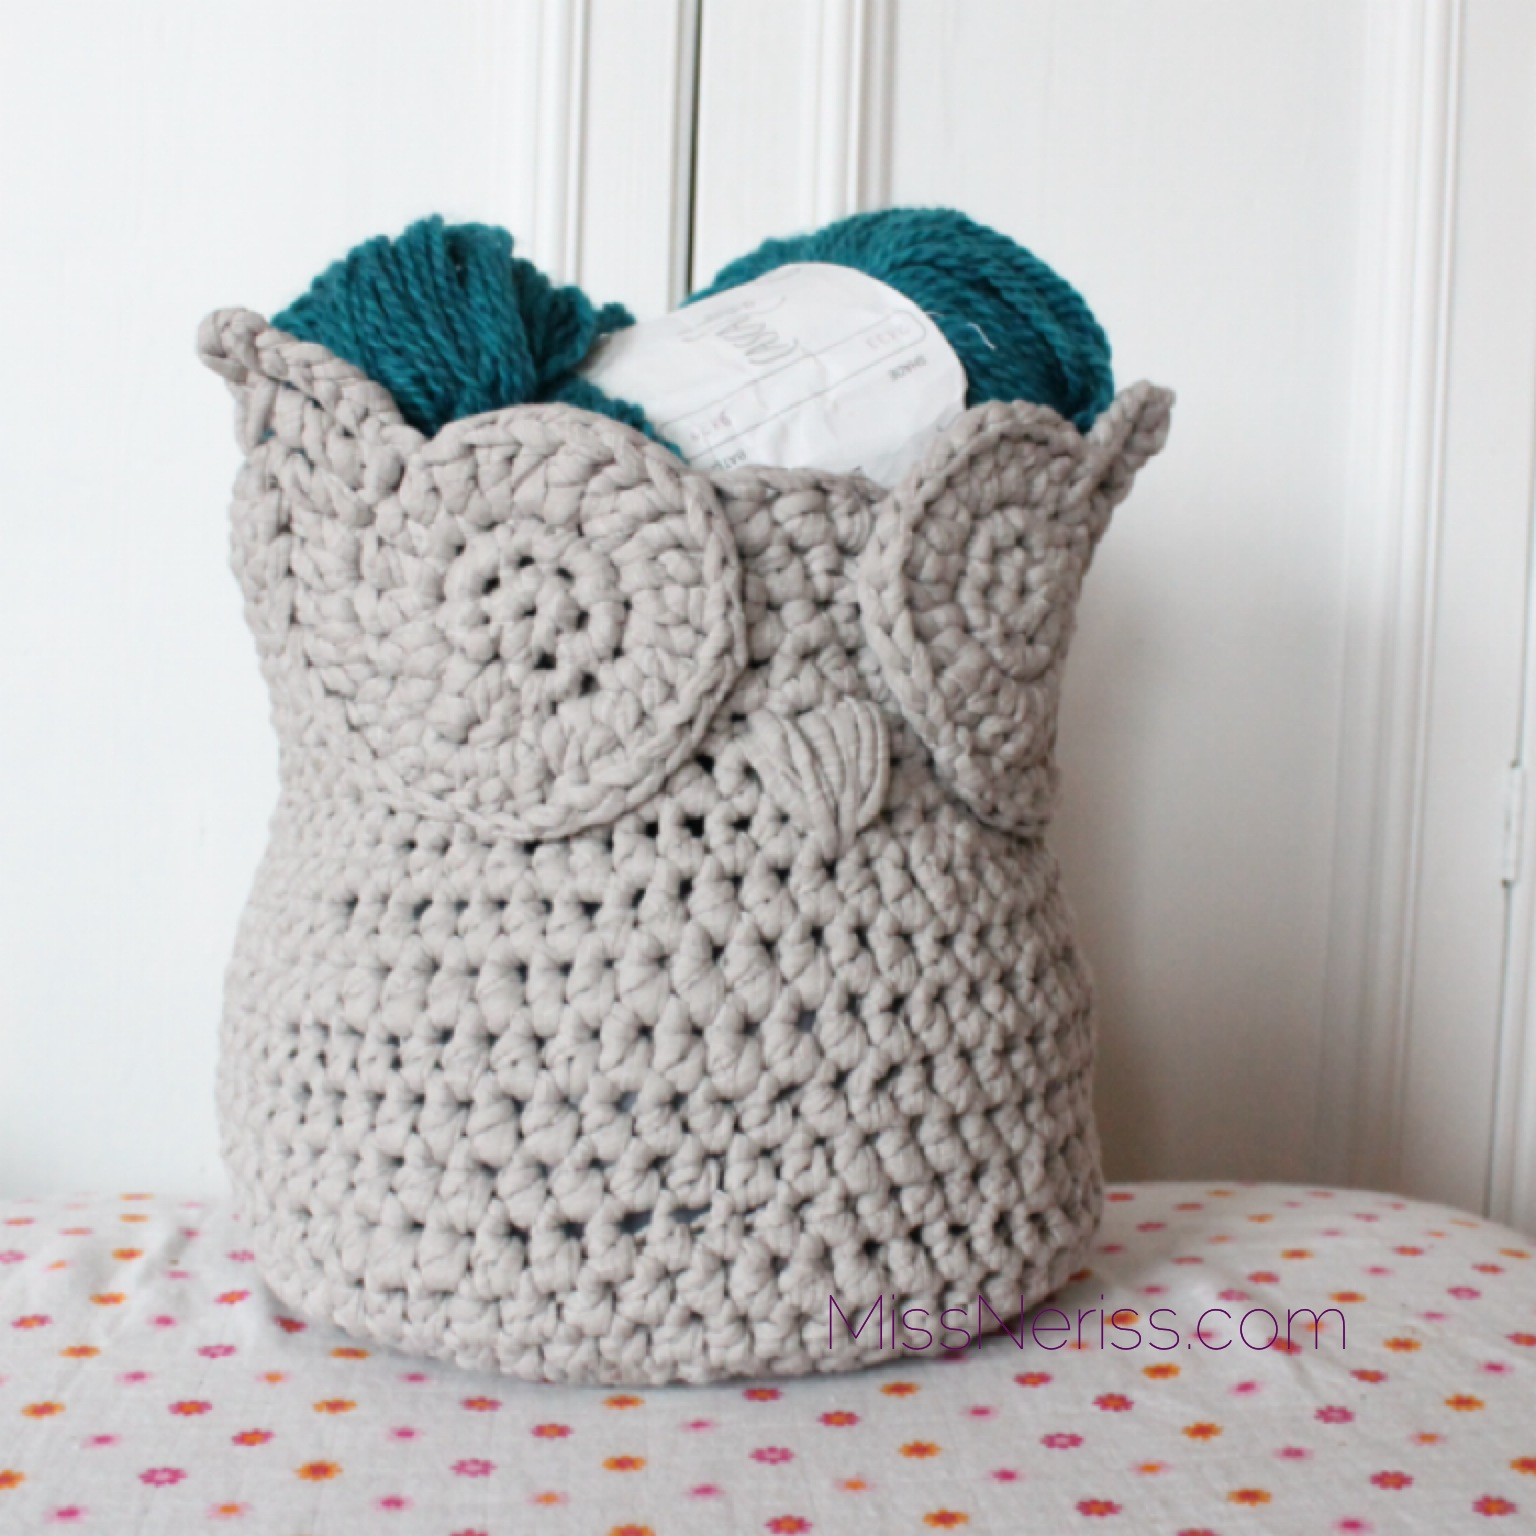 Free crochet pattern owl basket dancox for owl zpagetti yarn basket missneriss free crochet pattern bankloansurffo Images